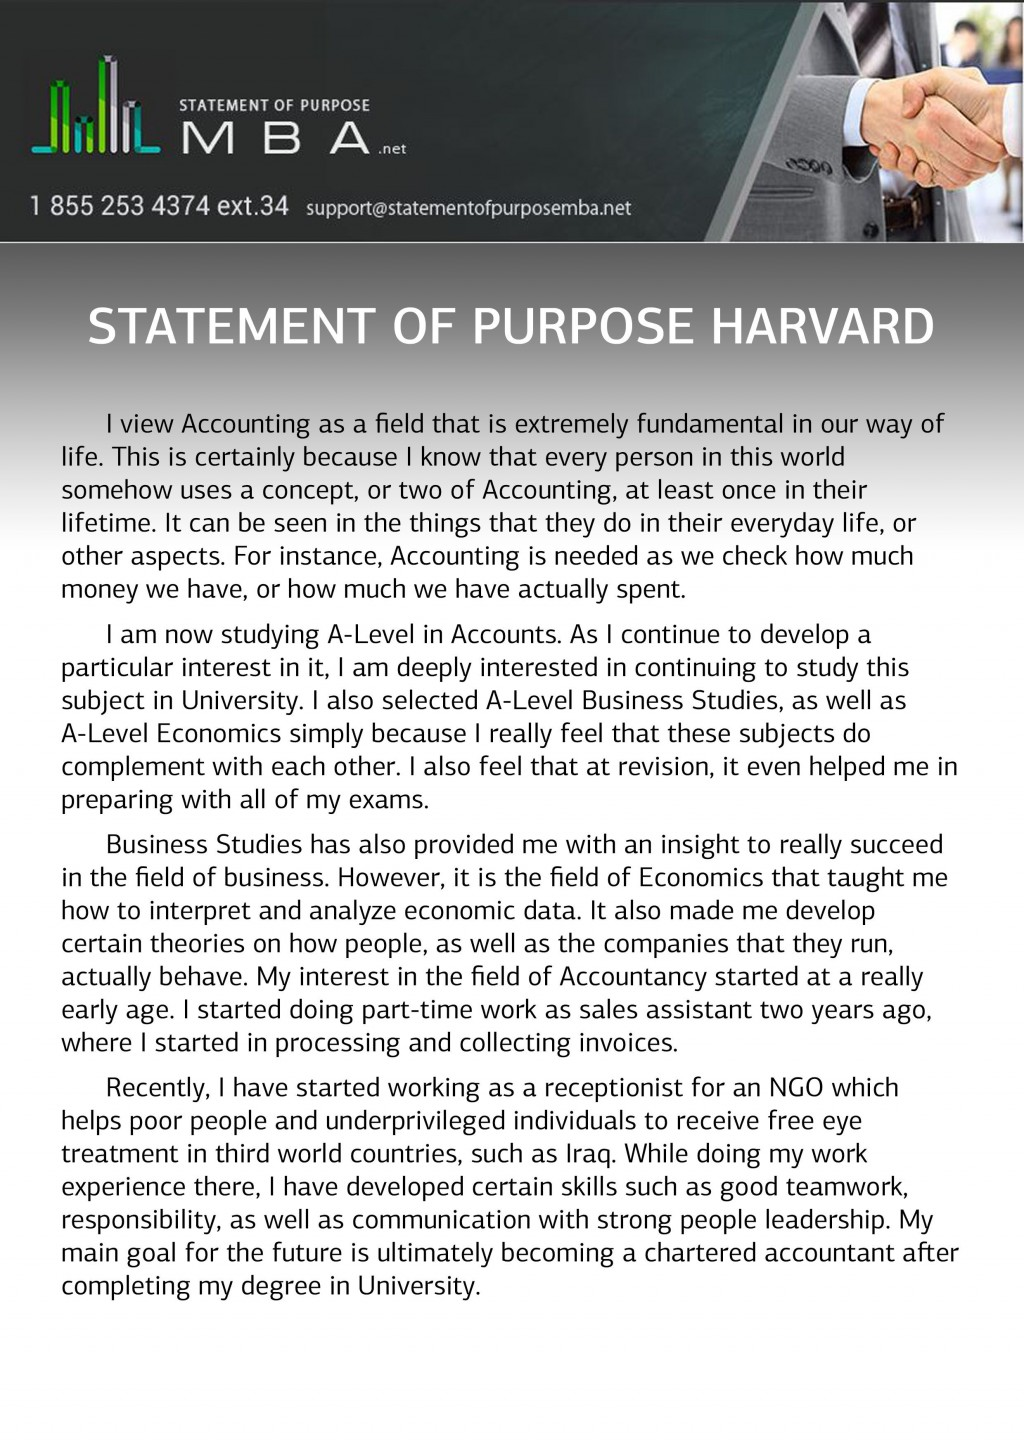 007 Harvard Essay Surprising Essays That Worked Application Prompt 2018 Prompts Large